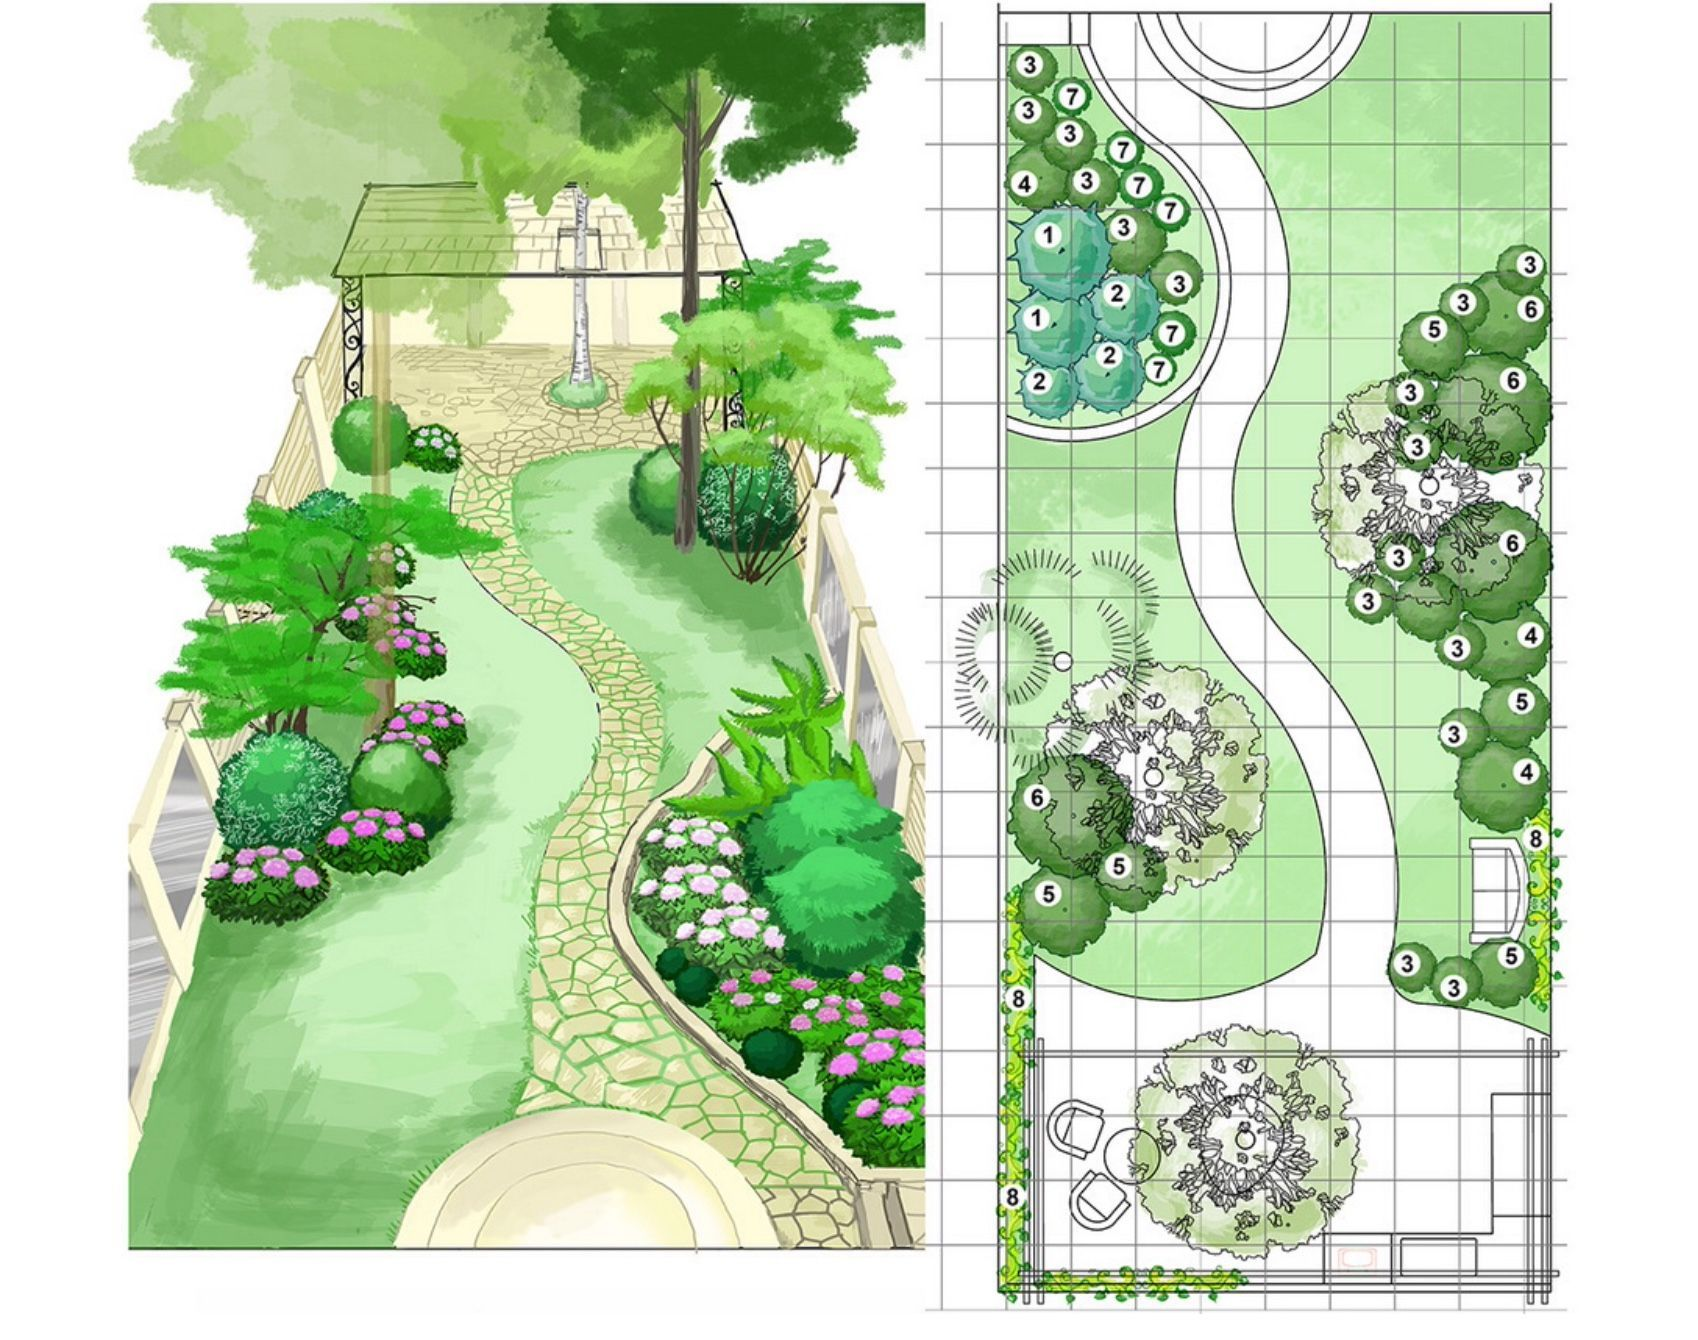 14 Clever Landscape Design Plans And Improvements For A Small Backyard Simphome Back Garden Design English Garden Design Garden Design Plans